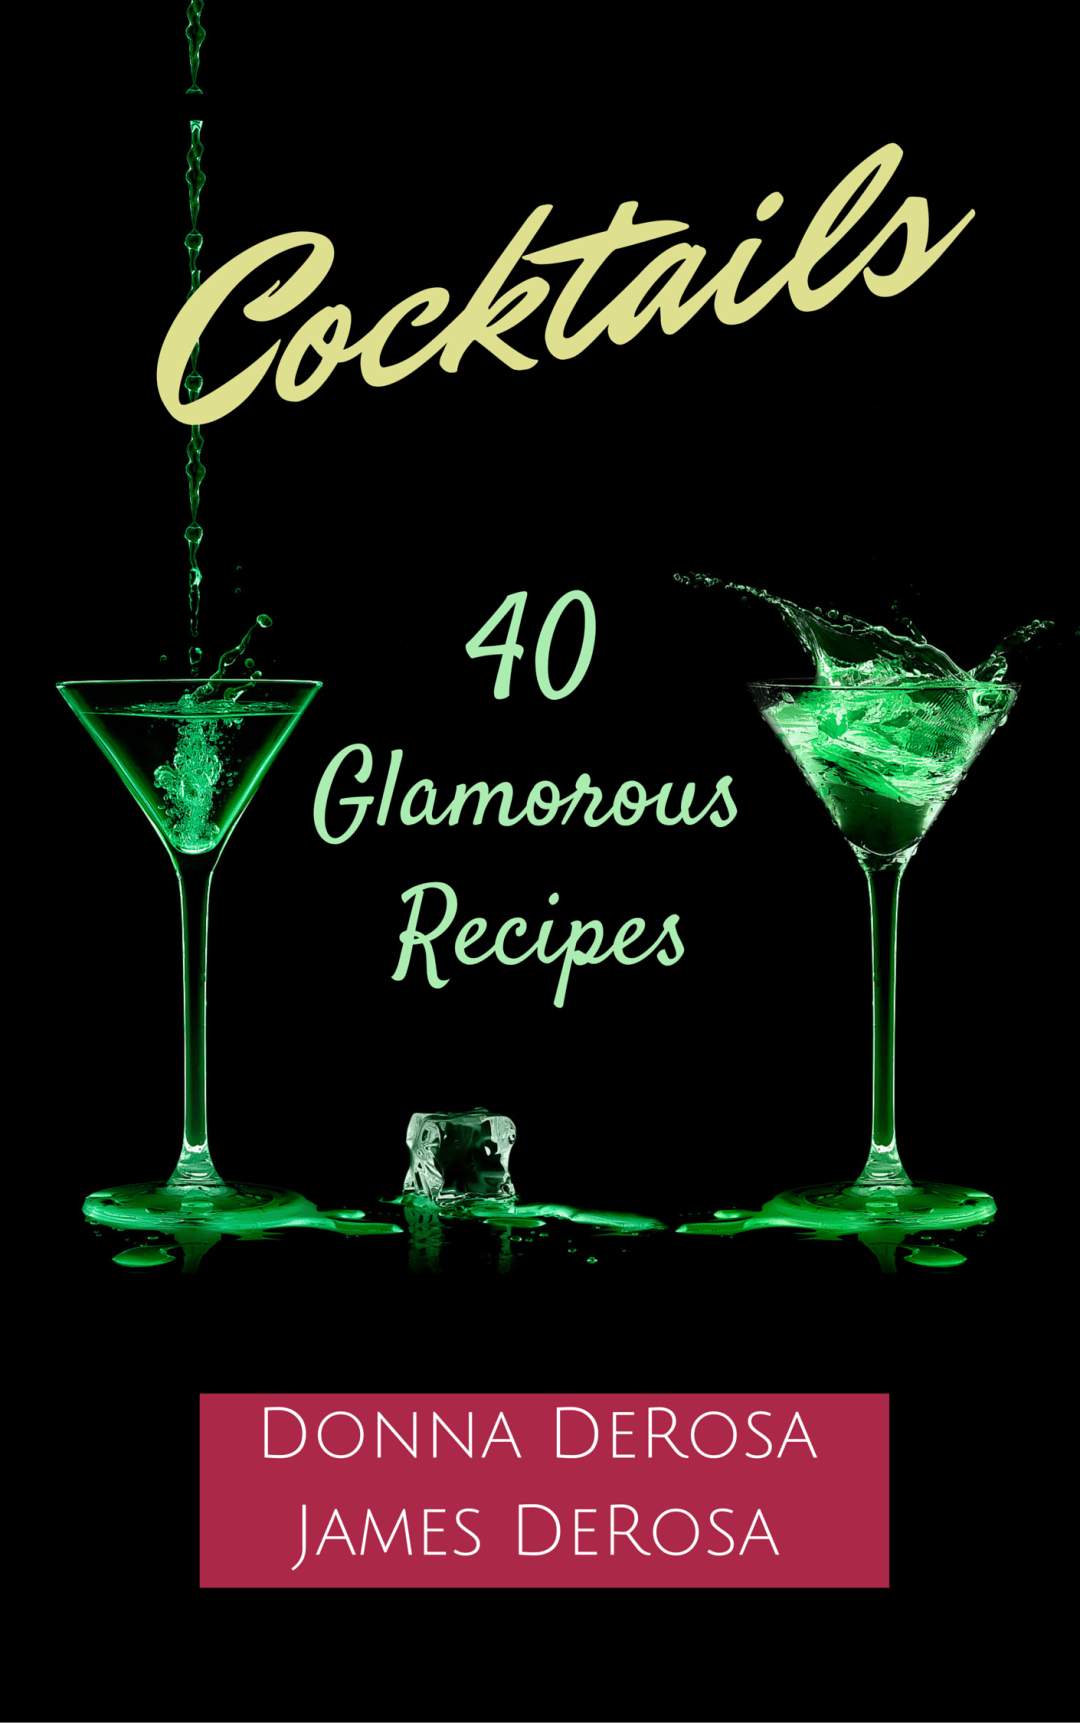 Cocktails: 40 Glamorous Recipes by Donna DeRosa